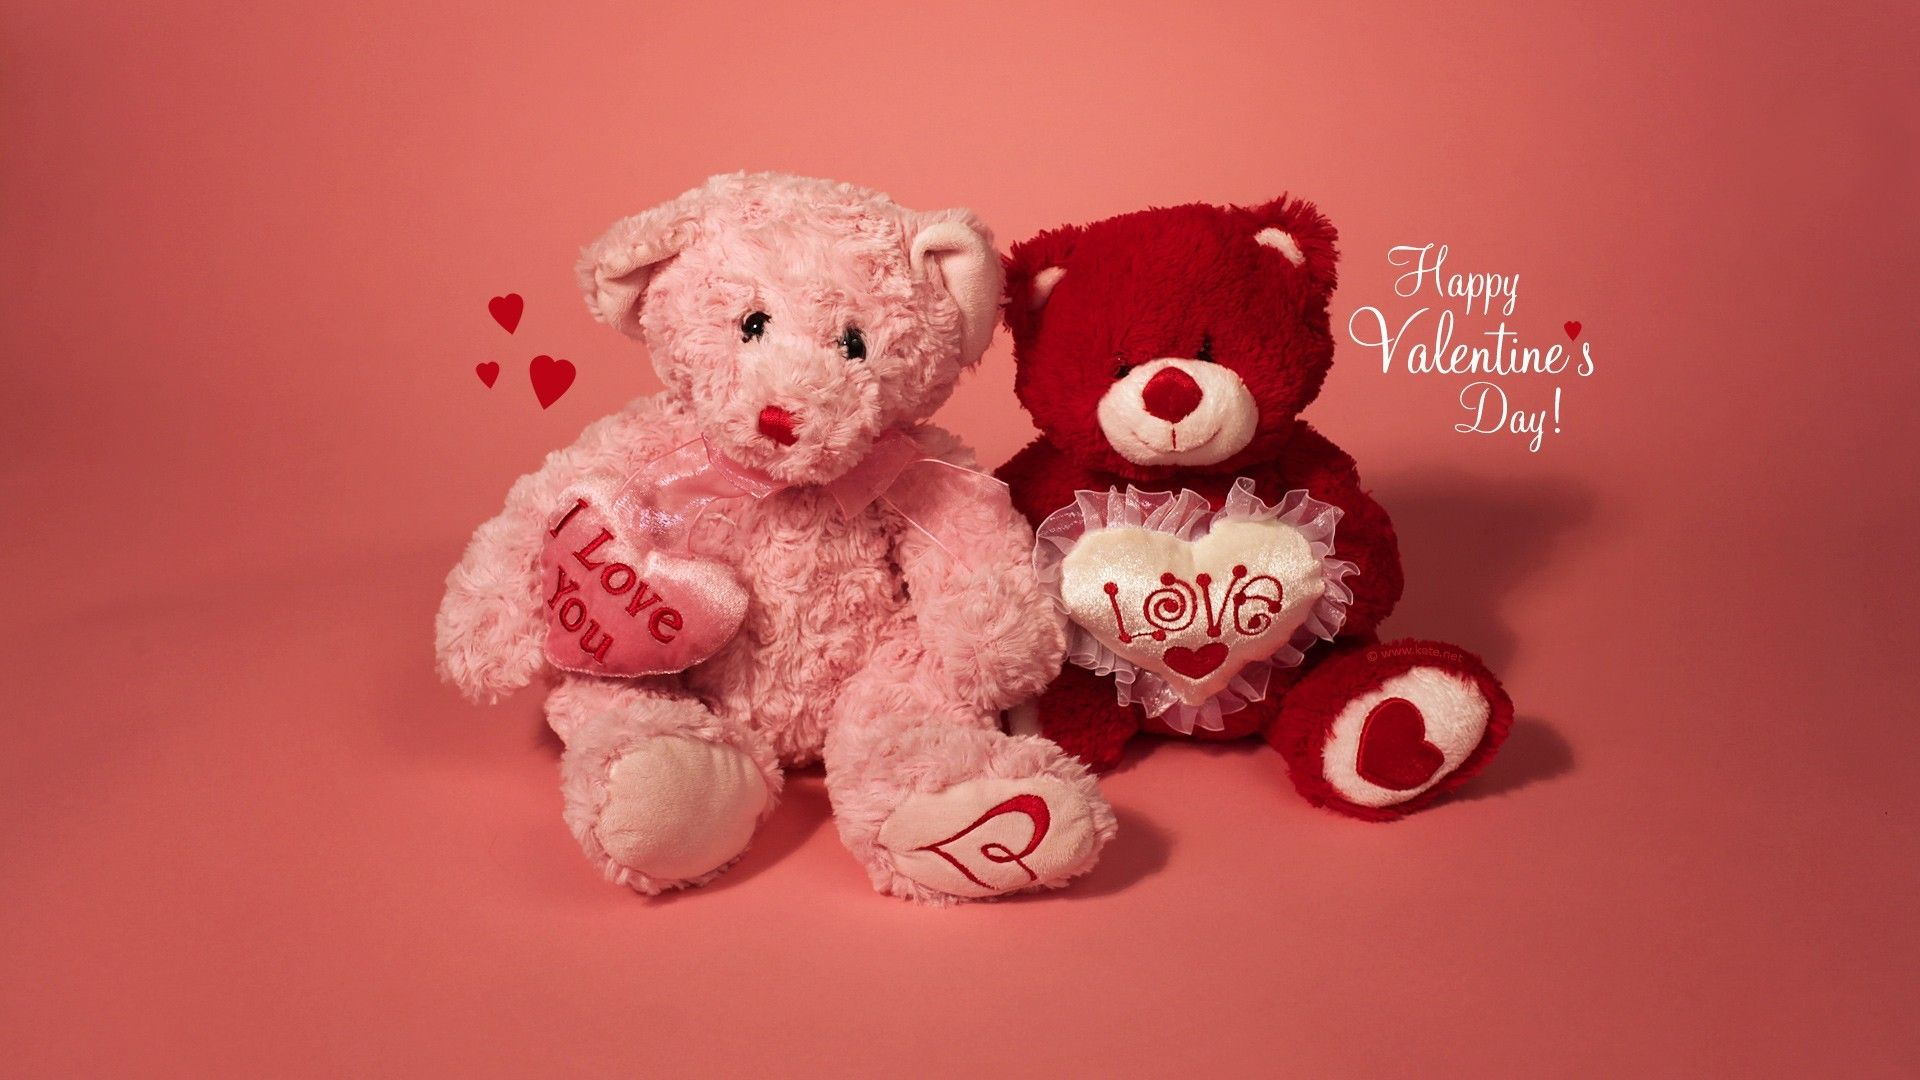 55 Cute Valentines Day Desktop Wallpapers   Download at WallpaperBro 1920x1080